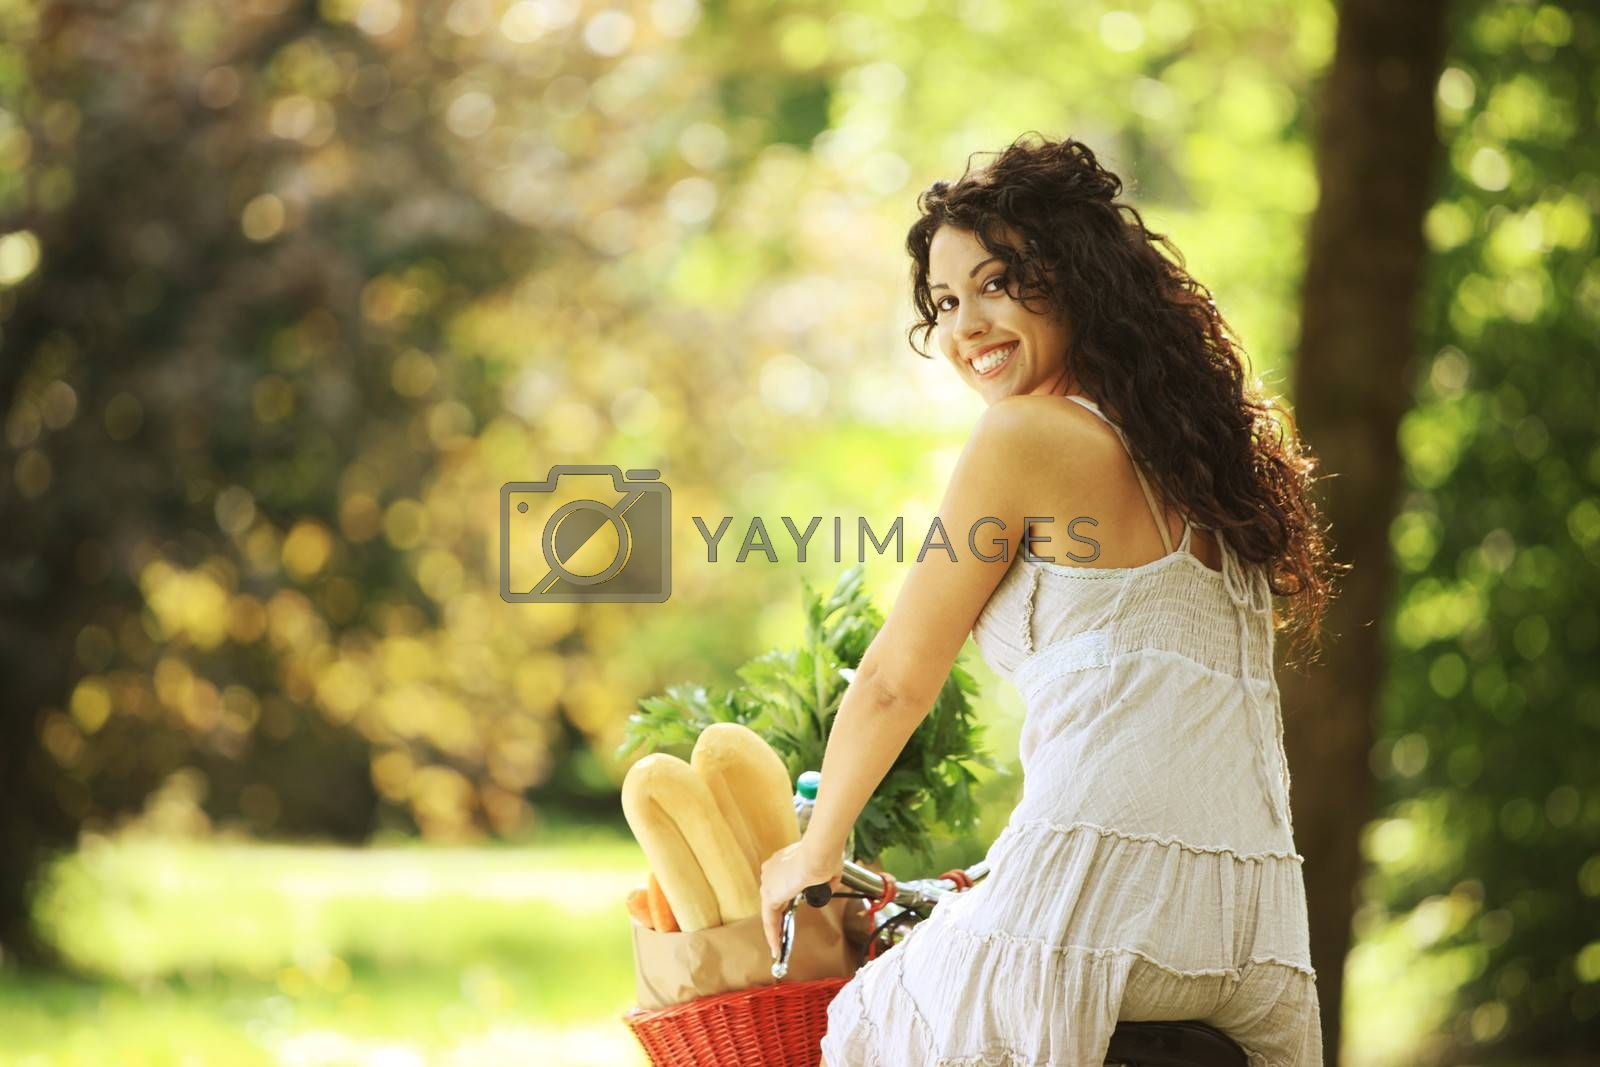 Portrait of a smiling young woman riding bicycle with groceries in basket